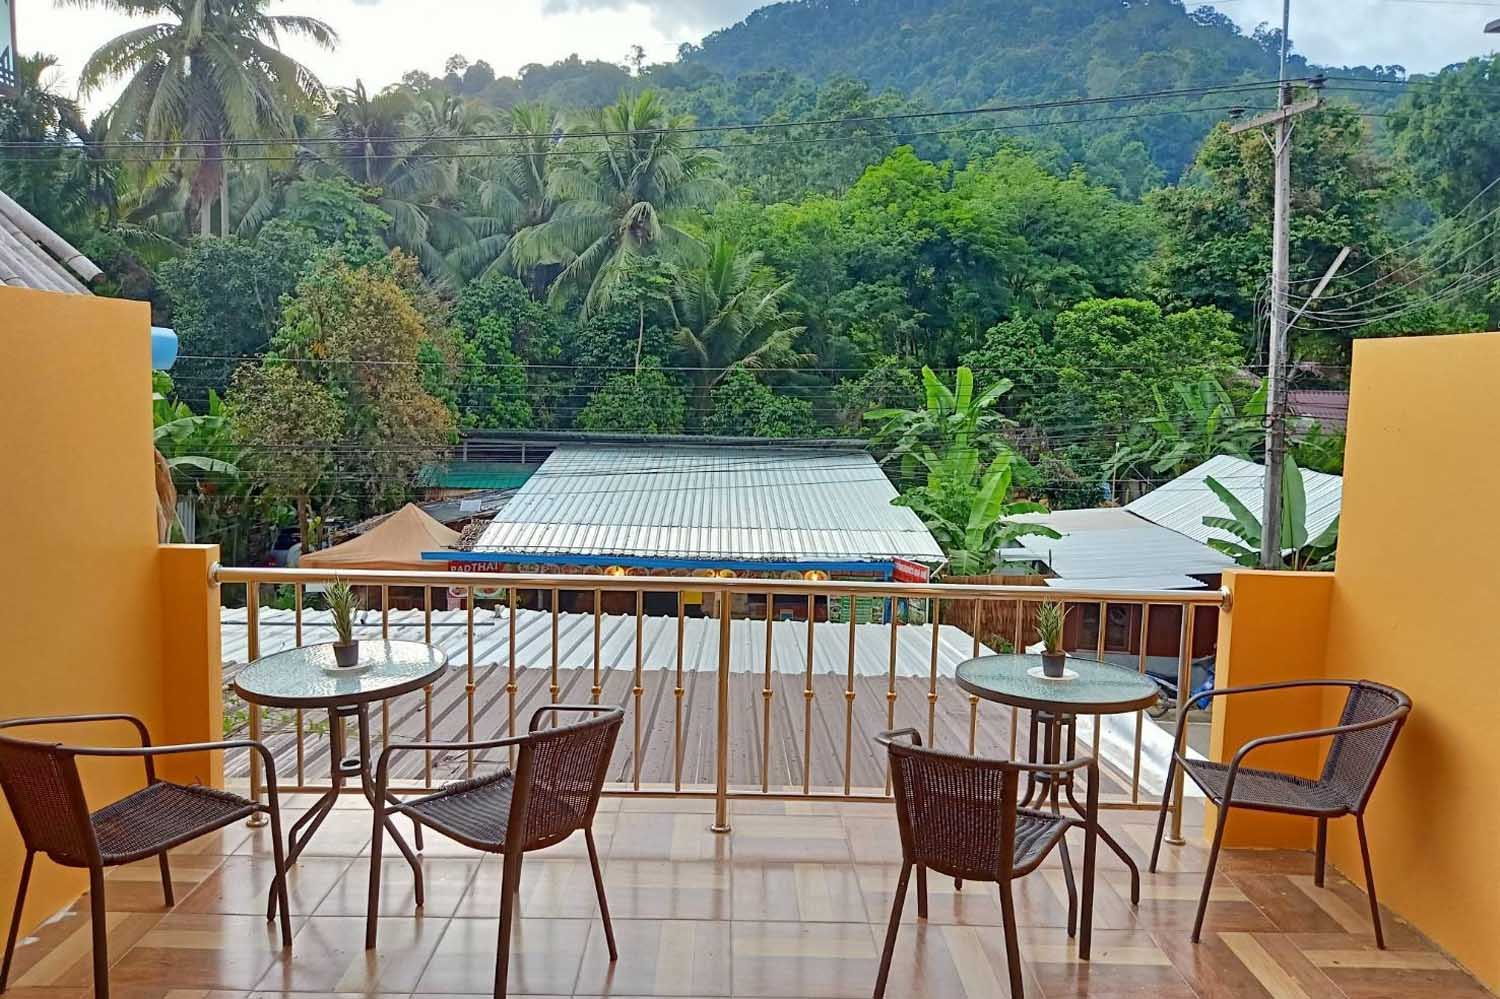 Where to stay in Khao Sok